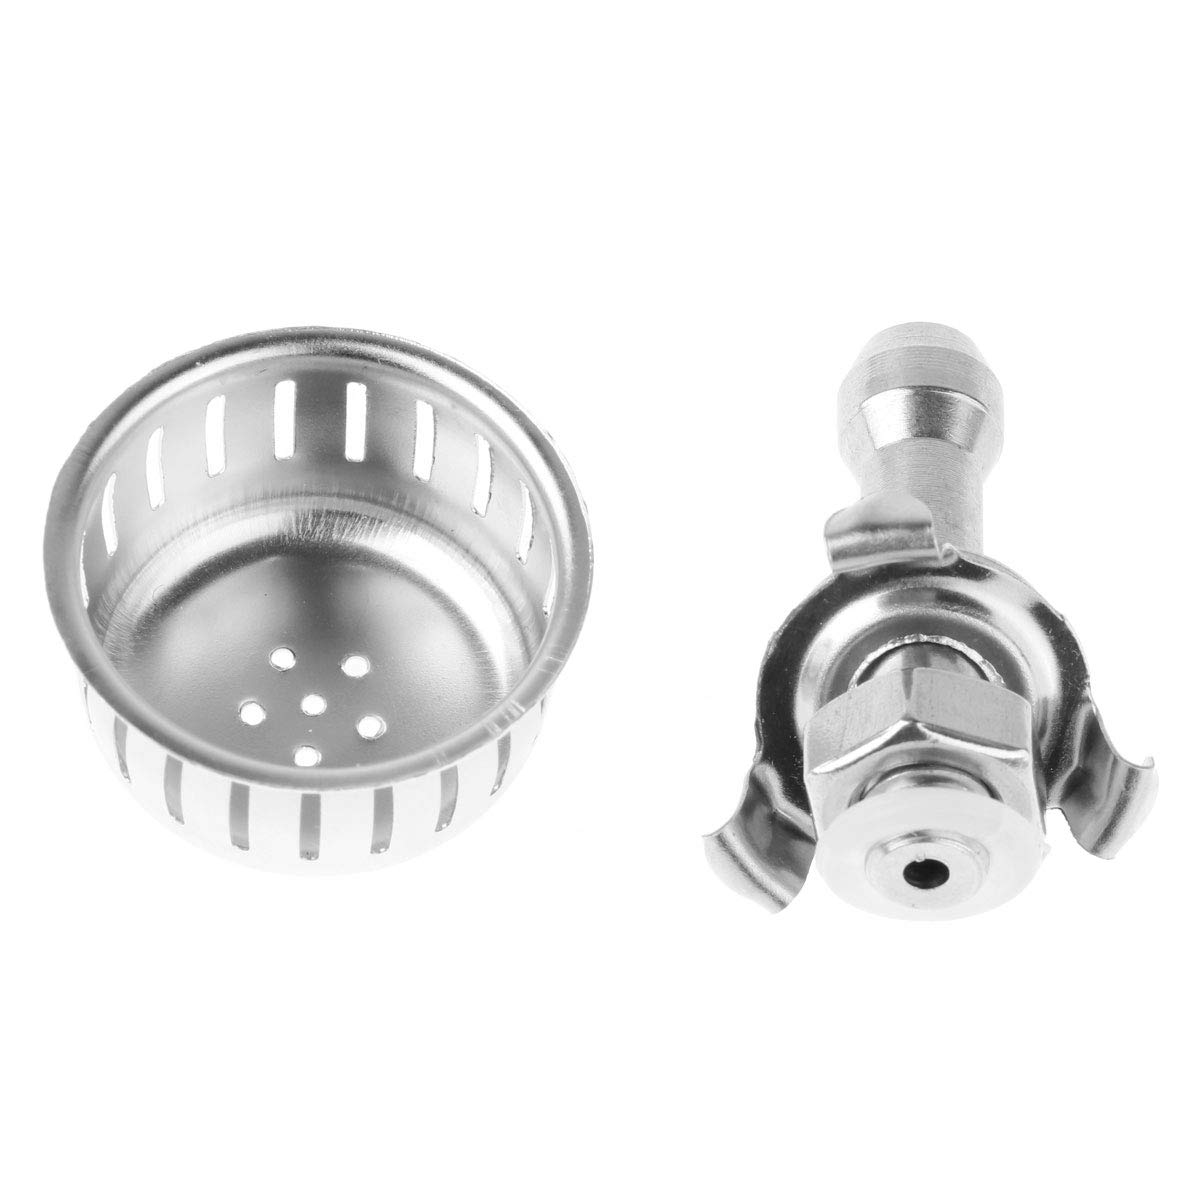 Freebily 2 Sets Universal Kitchen Pressure Cooker Cap Relief Jigger Valve Replacements with Anti Blocking Cover Bracket and Gasket Silver One Size by Freebily (Image #4)